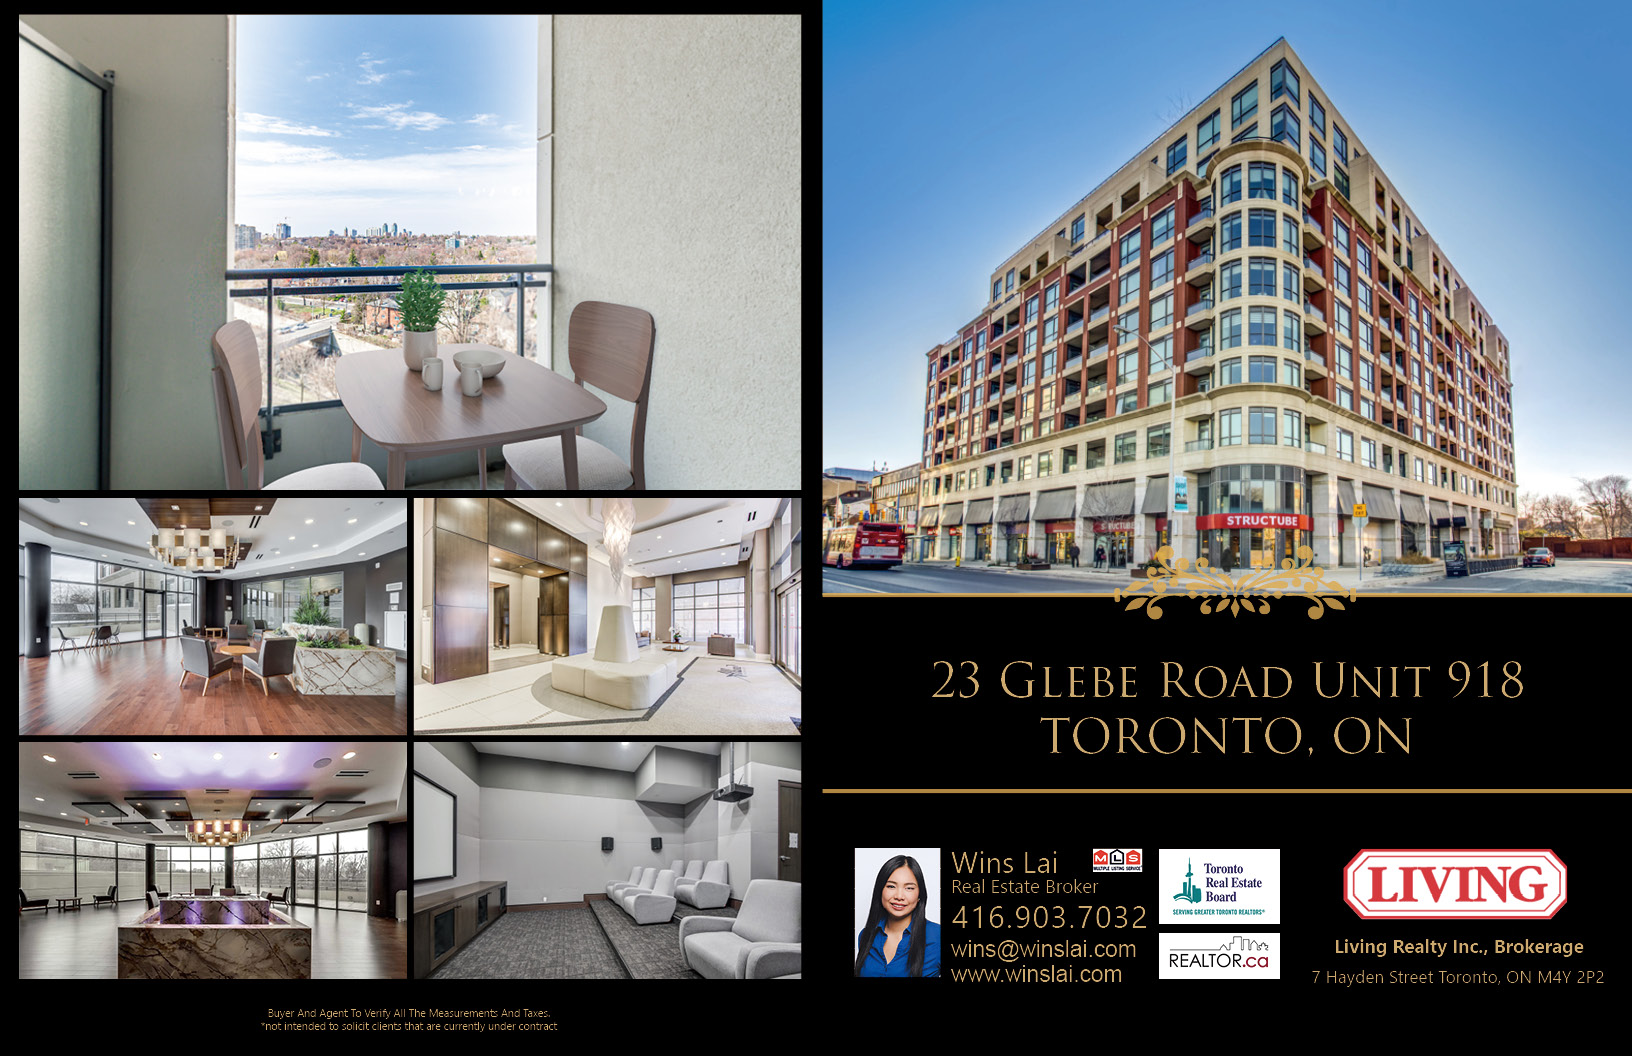 Marketing brochure showing several images of Allure Condos.